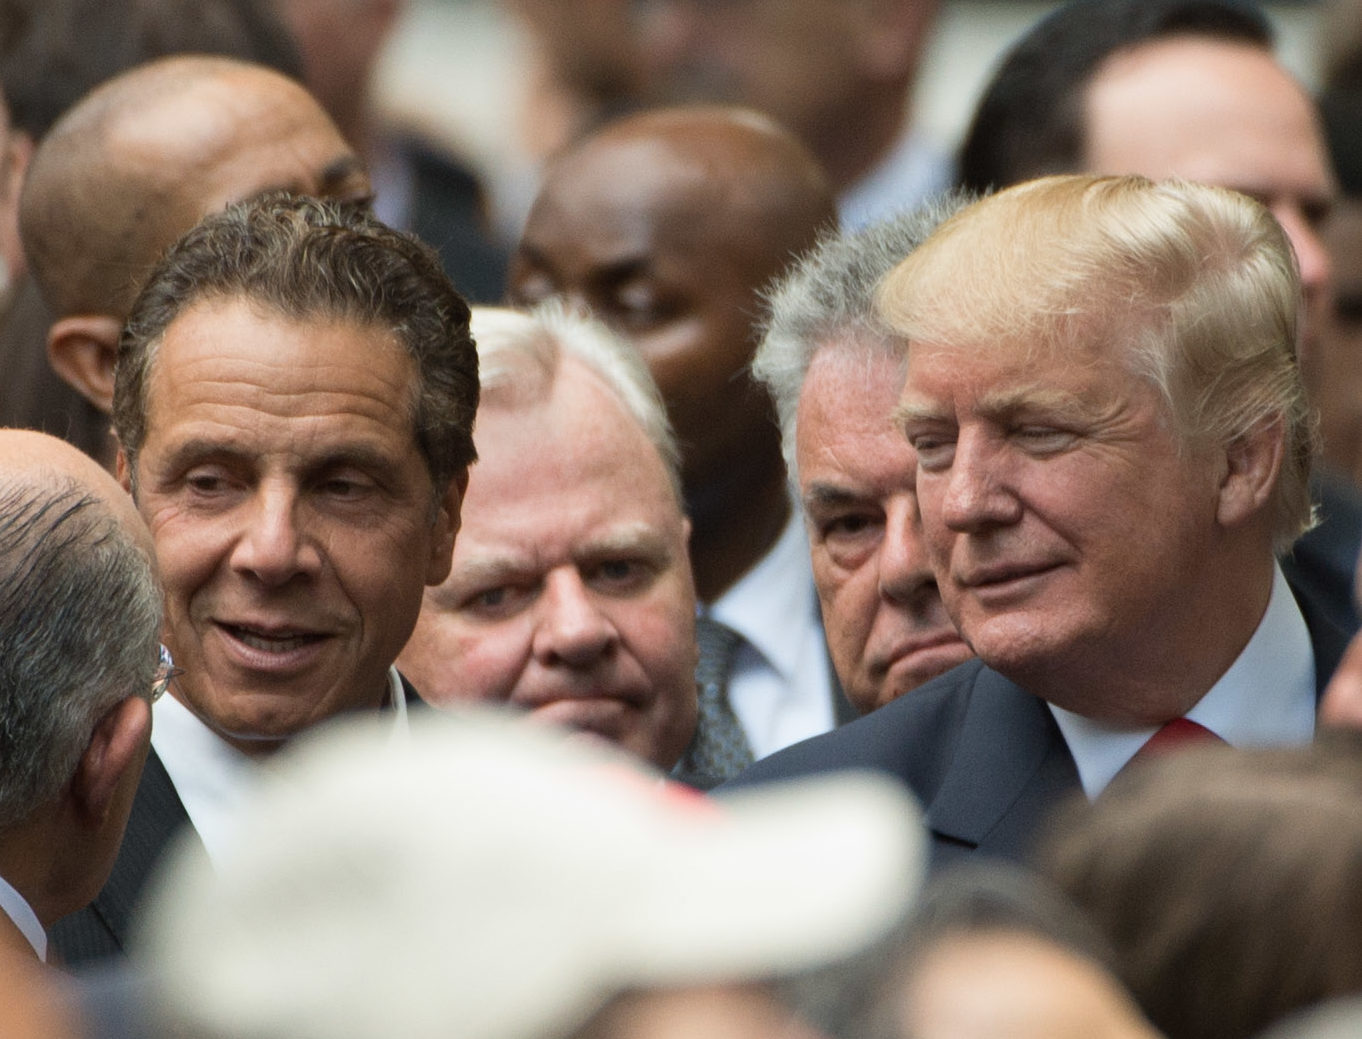 Trump Slams Cuomo on Virus Efforts: 'Andrew, Keep Politics Out of It'